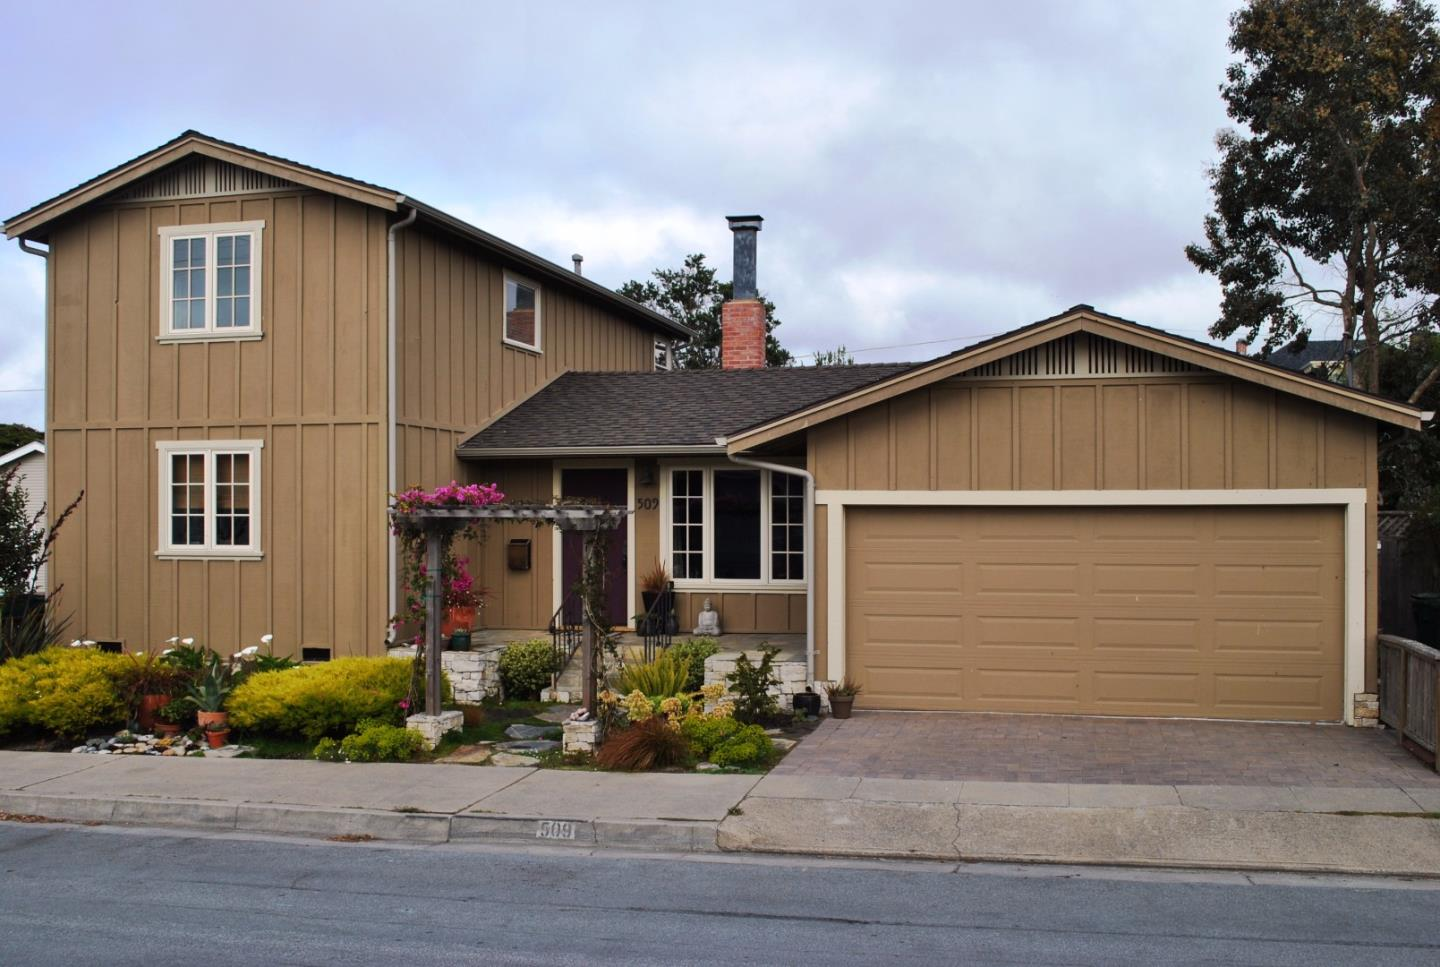 509 Willow St, Pacific Grove, CA 93950